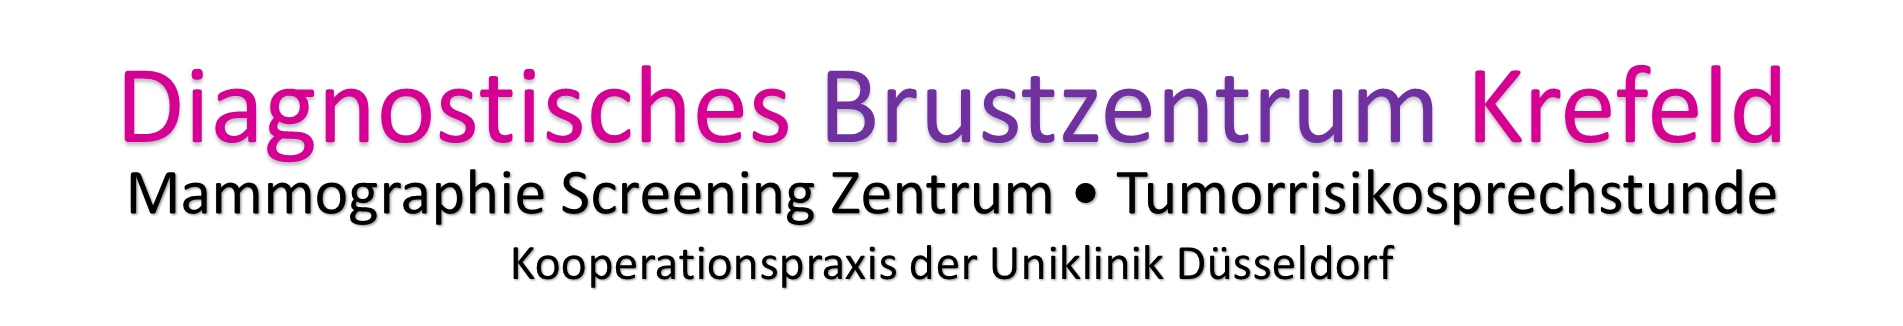 Diagnostisches Brustzentrum Krefeld 2